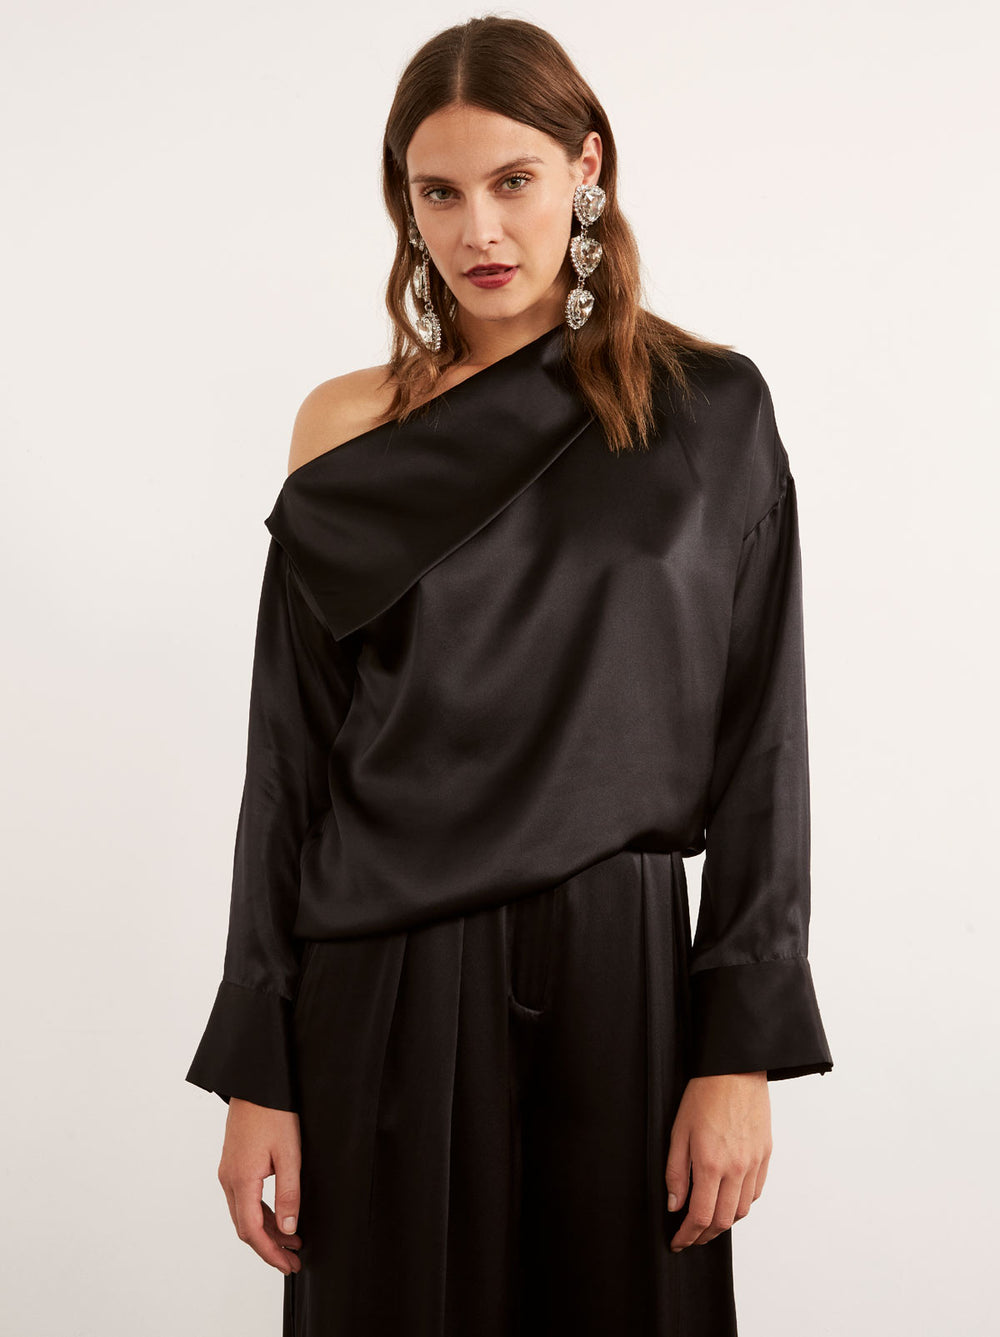 Chloe Black Silk Off Shoulder Top by KITRI Studio